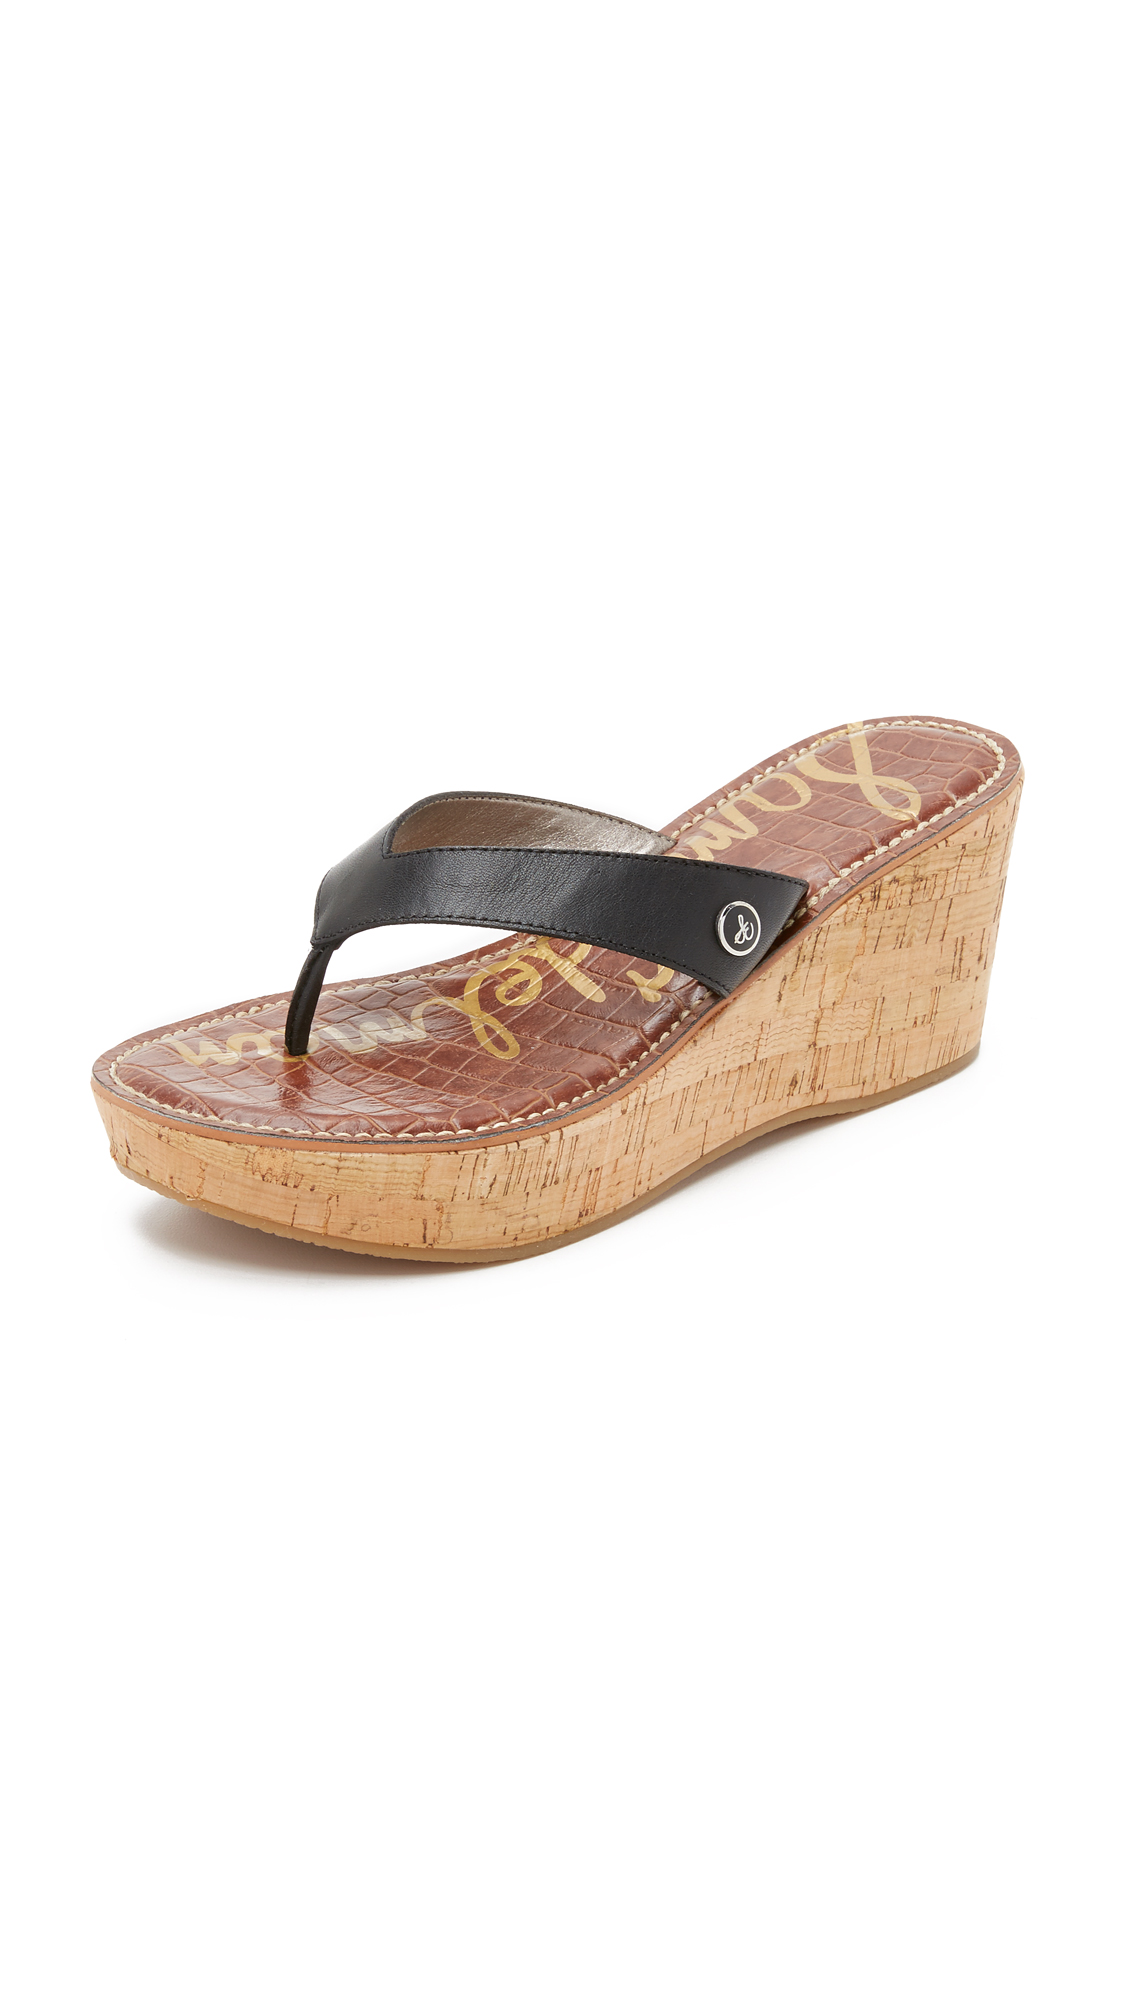 Sam Edelman Romy Wedge Thong Sandals - Black